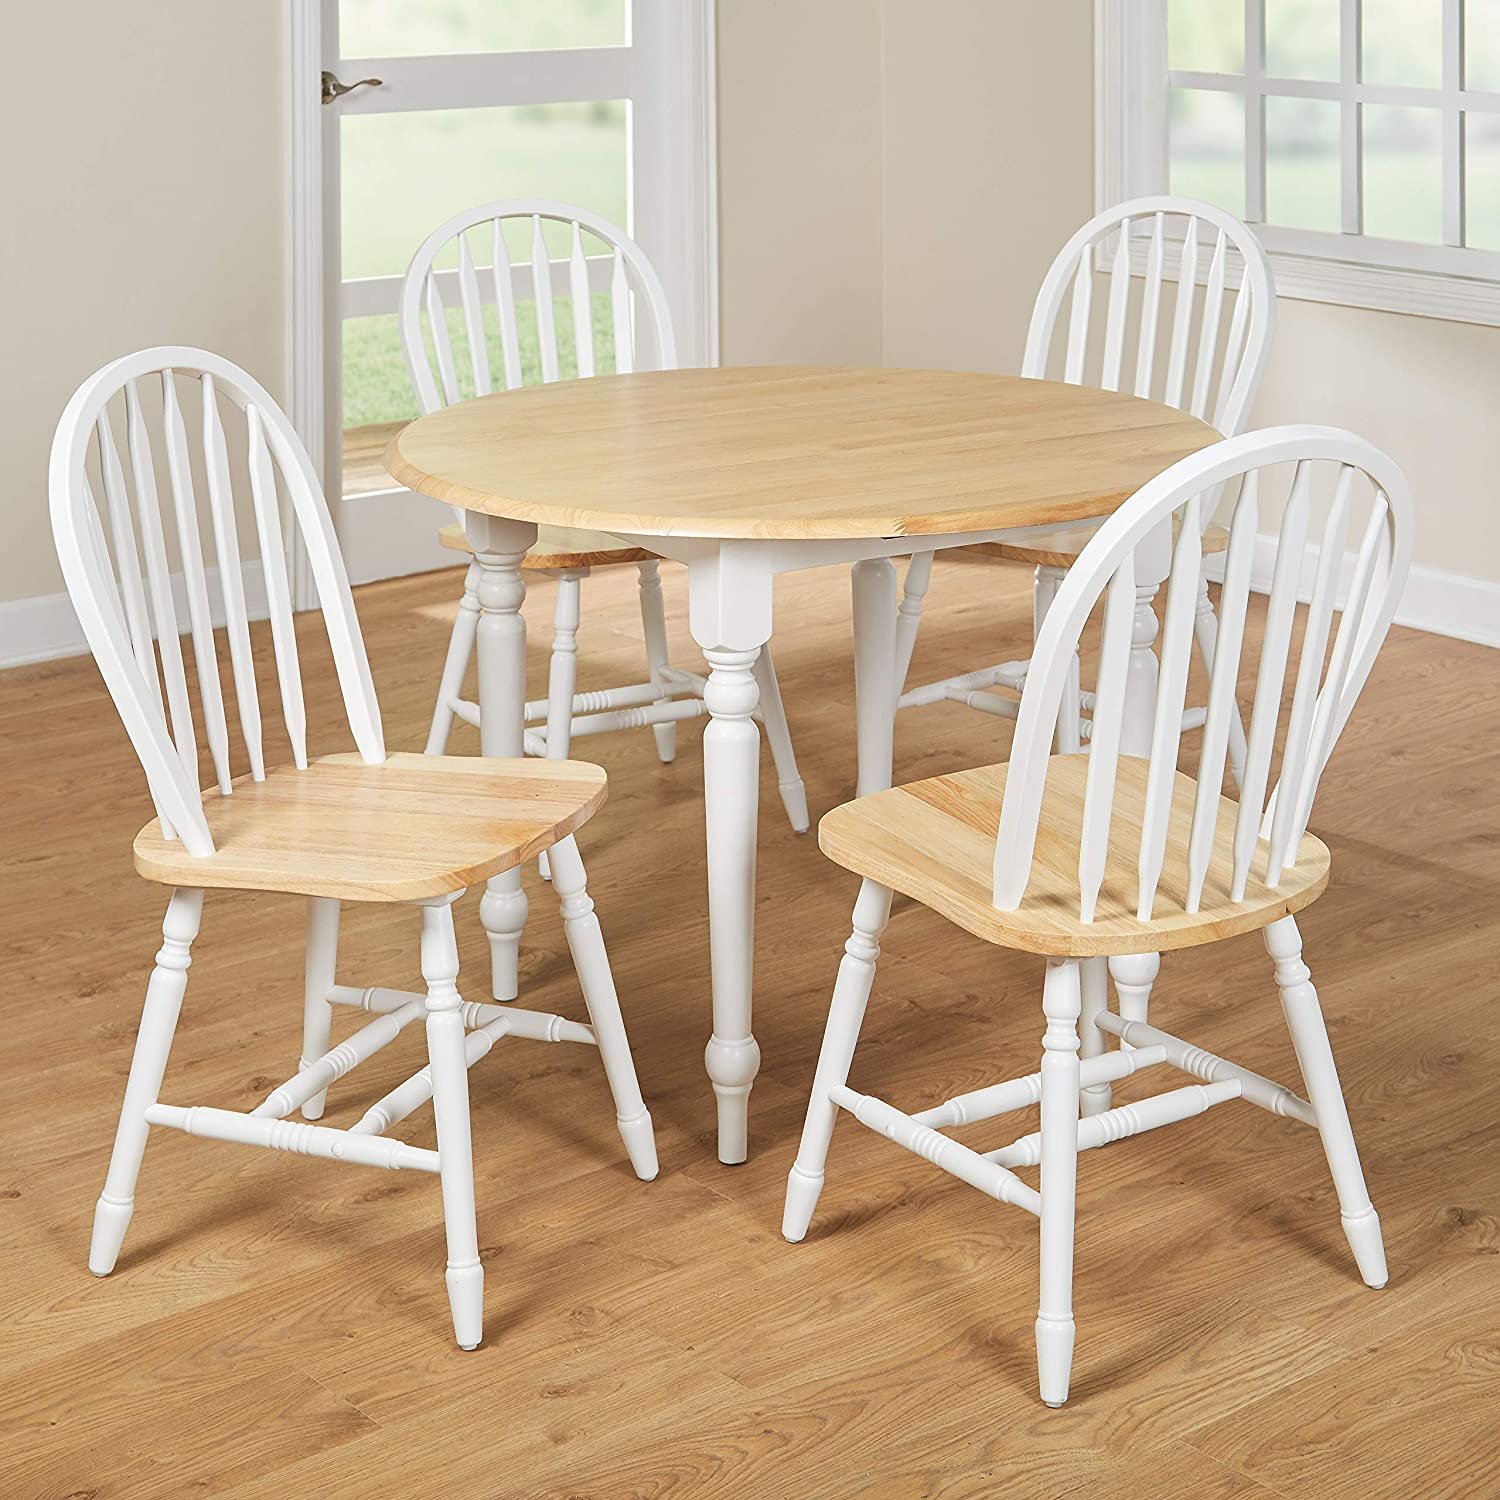 TMS 5 Piece Drop Leaf Dining Set White//Natural Target Marketing Systems 44209 TM-44209NW